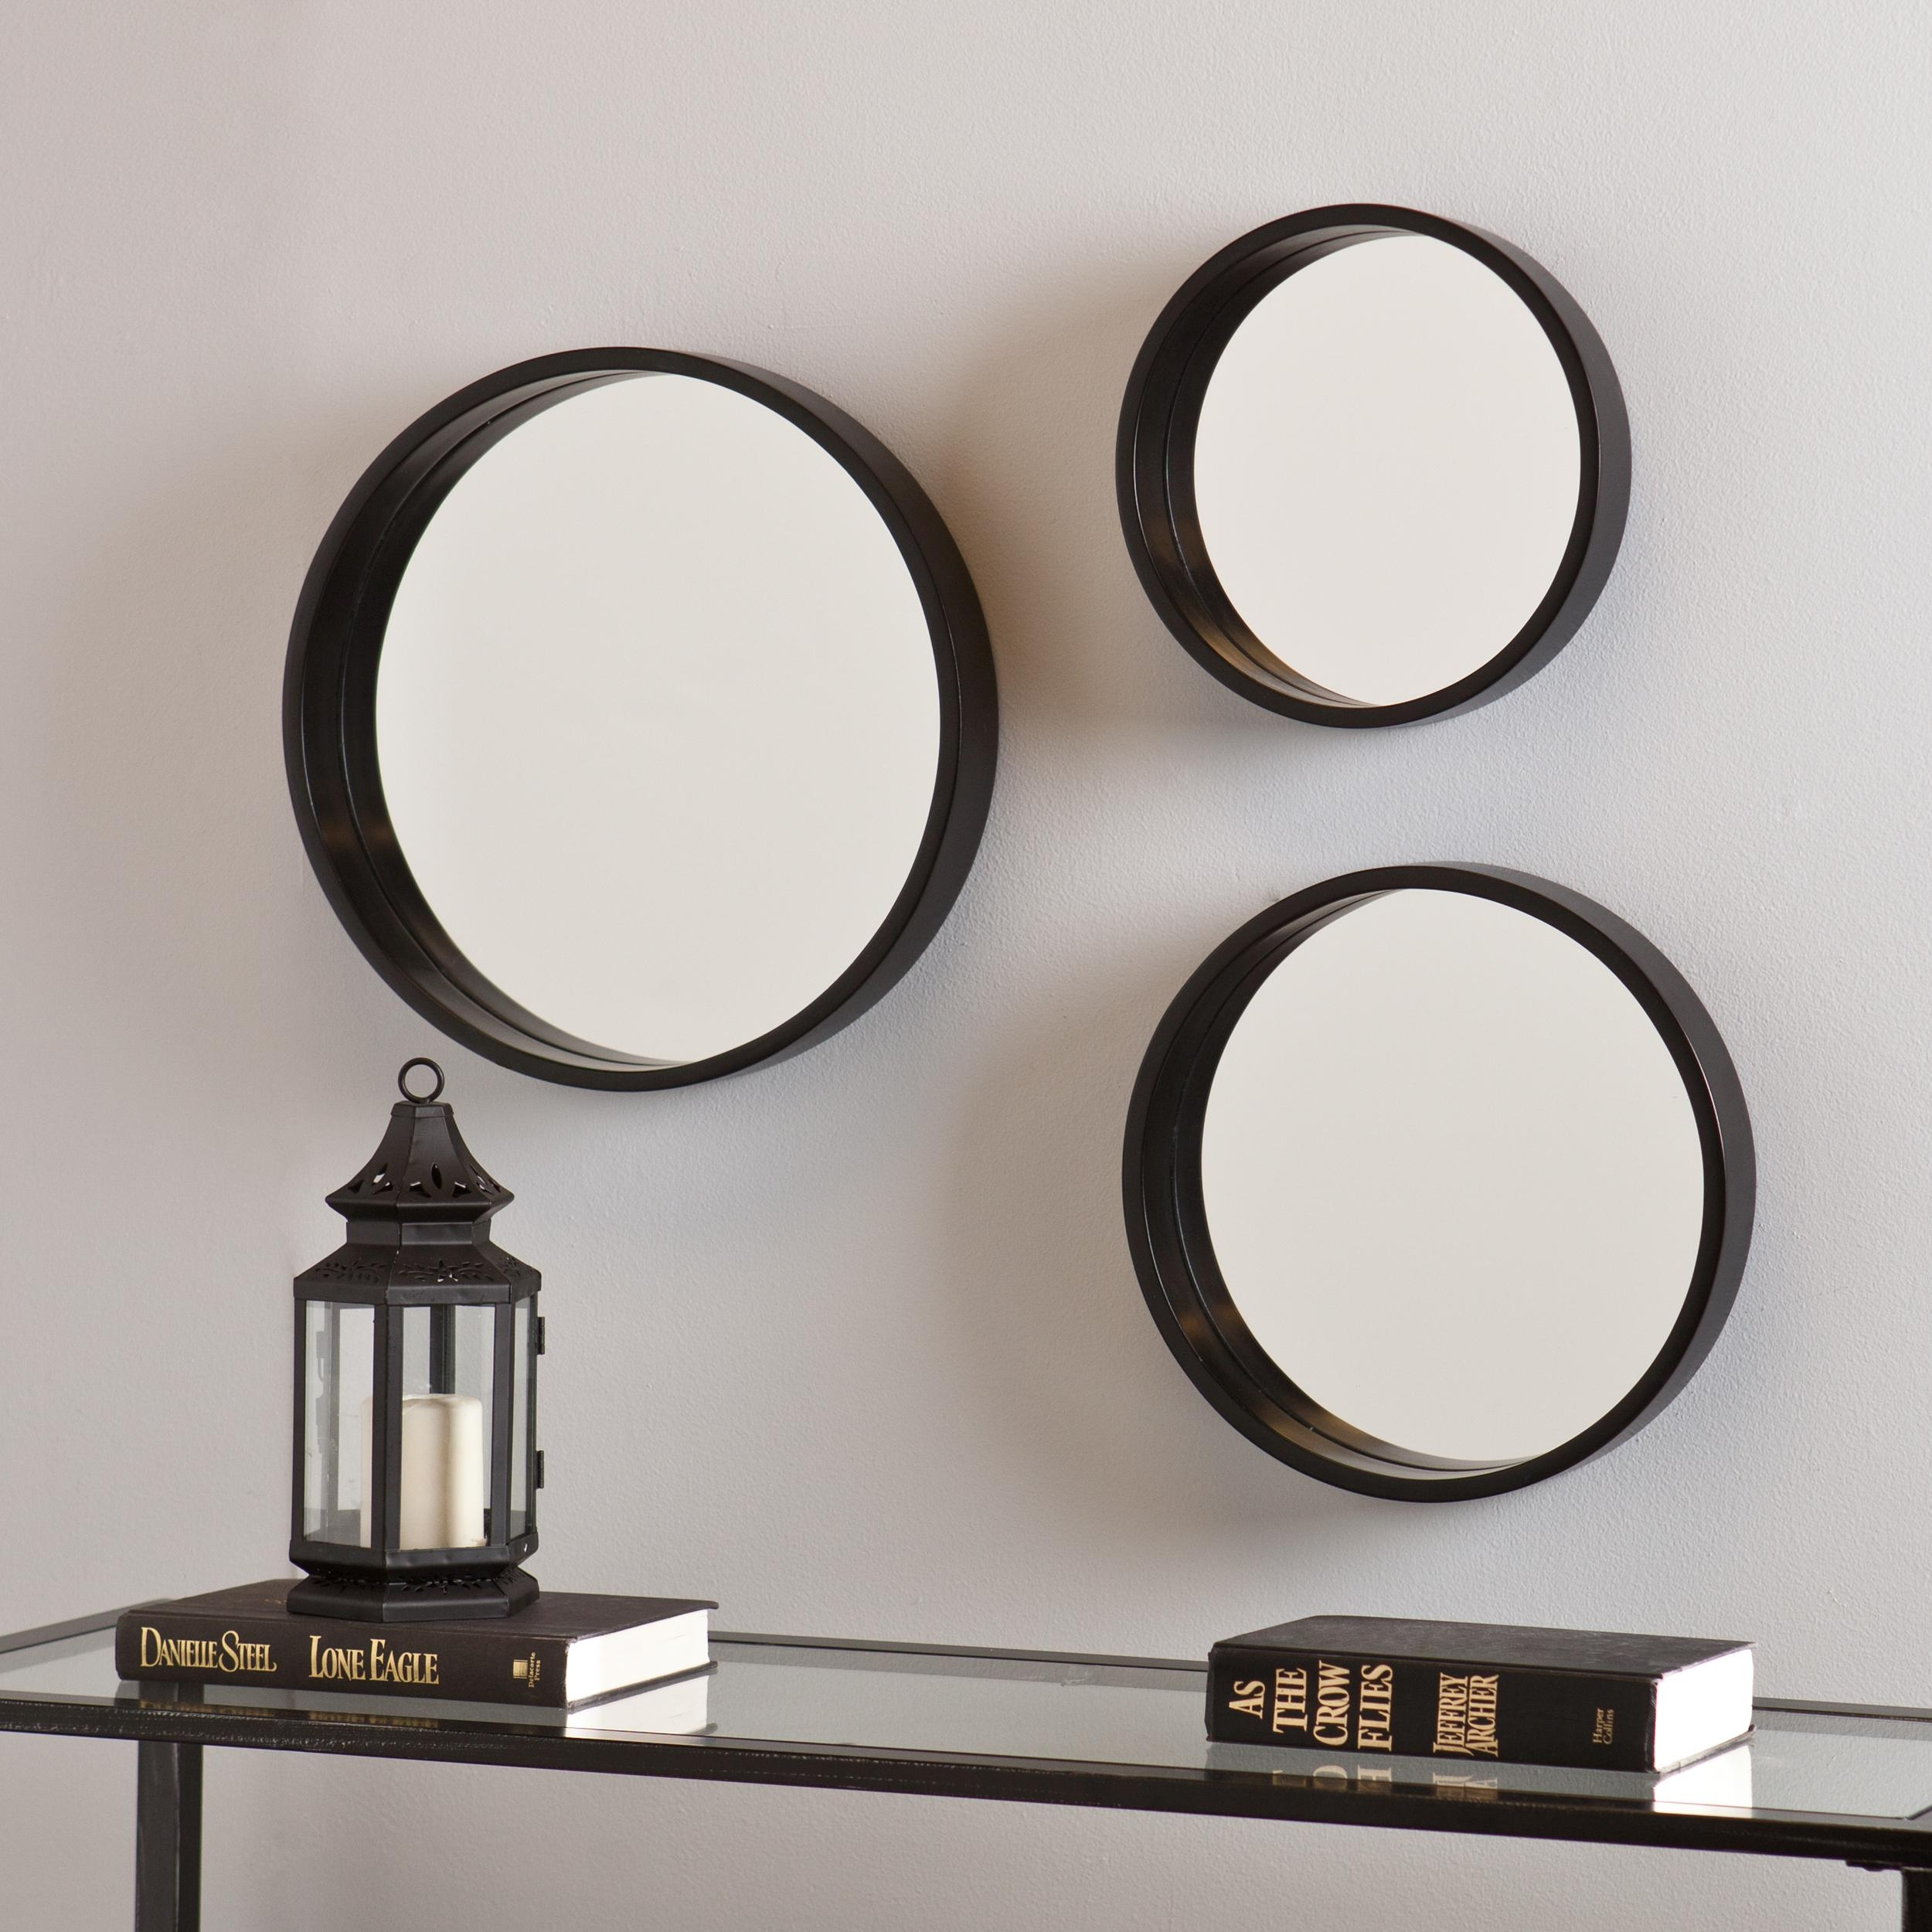 Astonishing Decoration Set Of 3 Wall Mirrors Interesting Better Throughout Interesting Wall Mirrors (View 9 of 15)